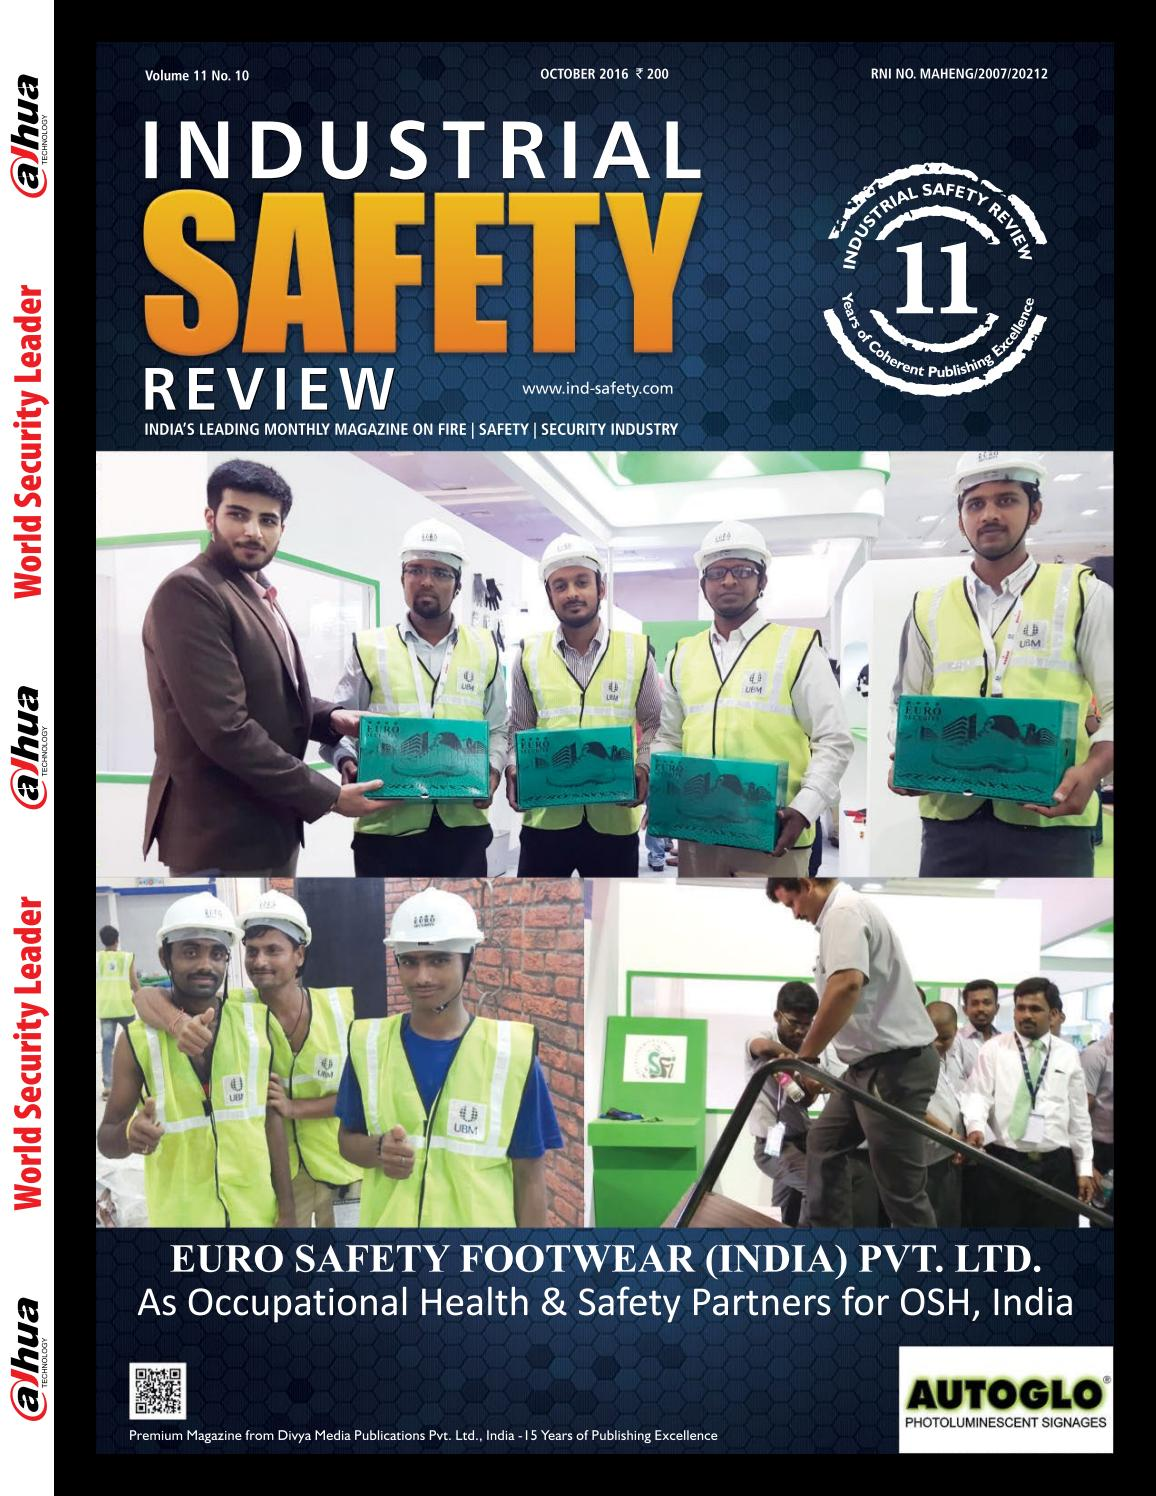 security managers in industrial safety essay Security managers can identify industrial hazards by hazard identification and risk assessment there are a number of ways hazards can be identified in the workplace we will write a custom essay sample on security managers in industrial safety specifically for you for only $1638 $139/page.